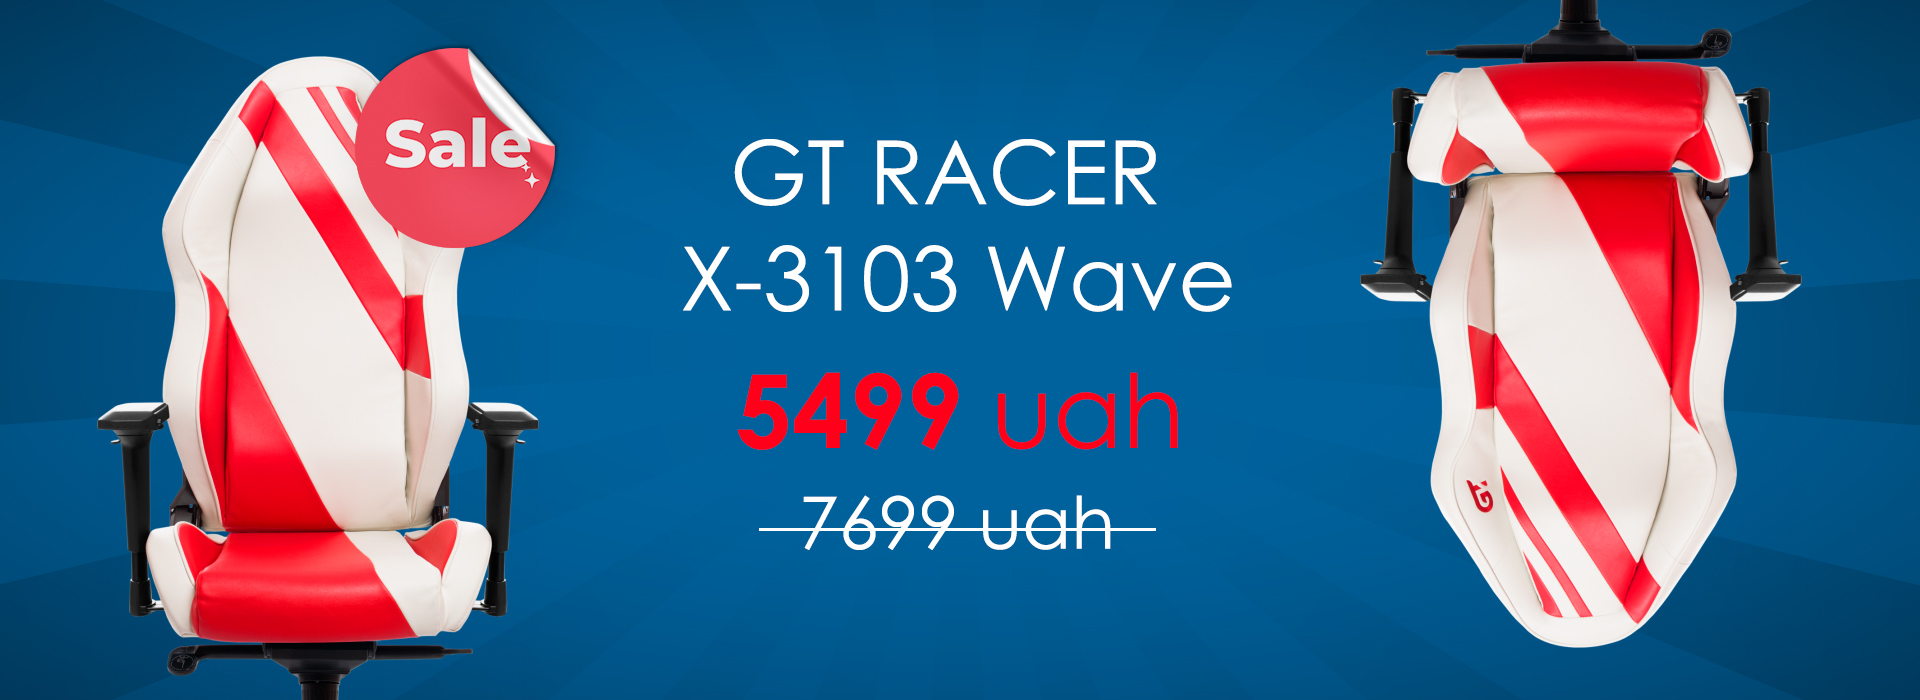 Stock! Discount on the gaming chair GT Racer X-3103!